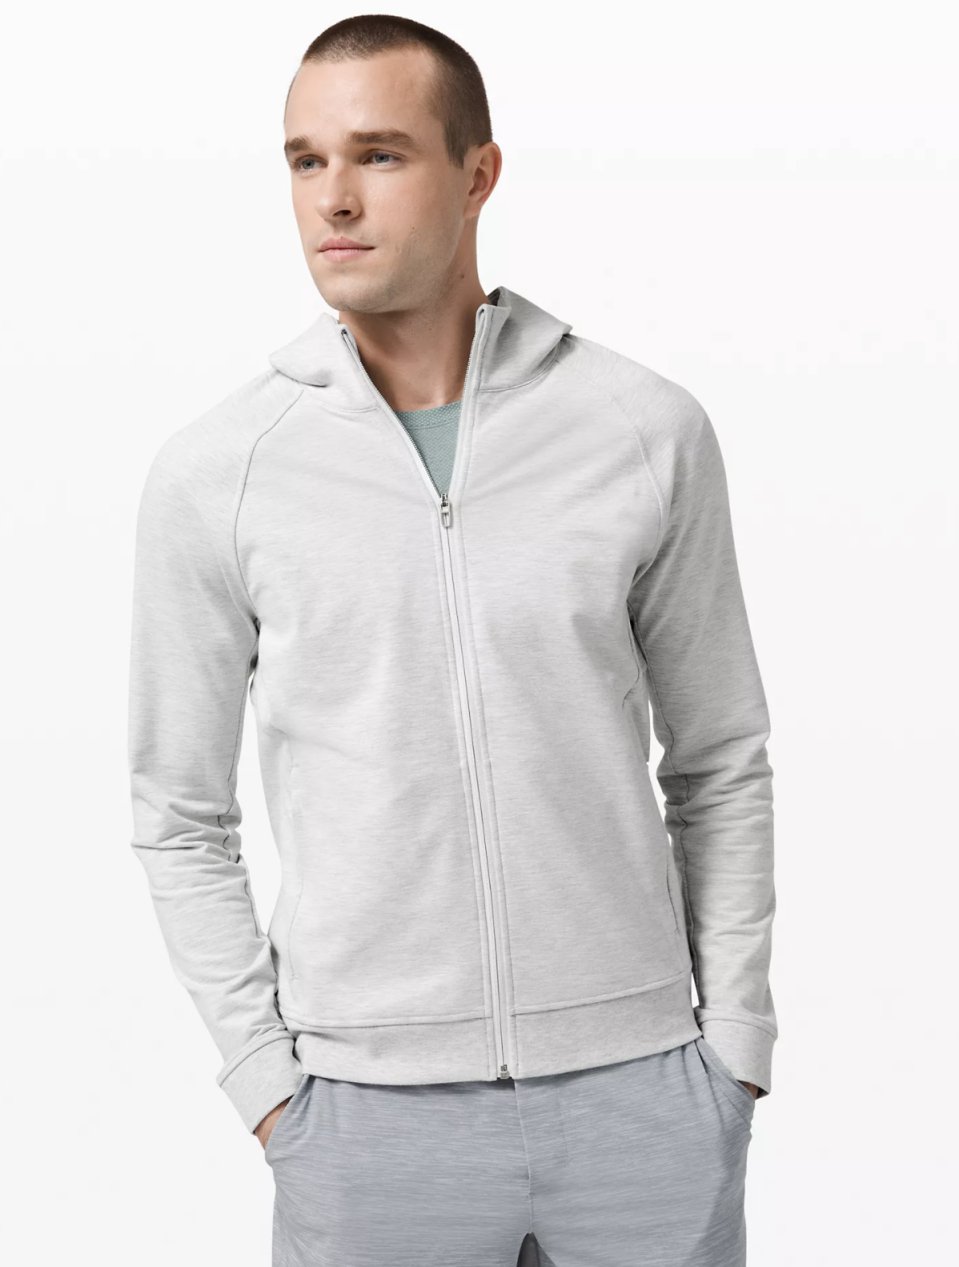 The City Sweat Hoodie -Lululemon, $128.